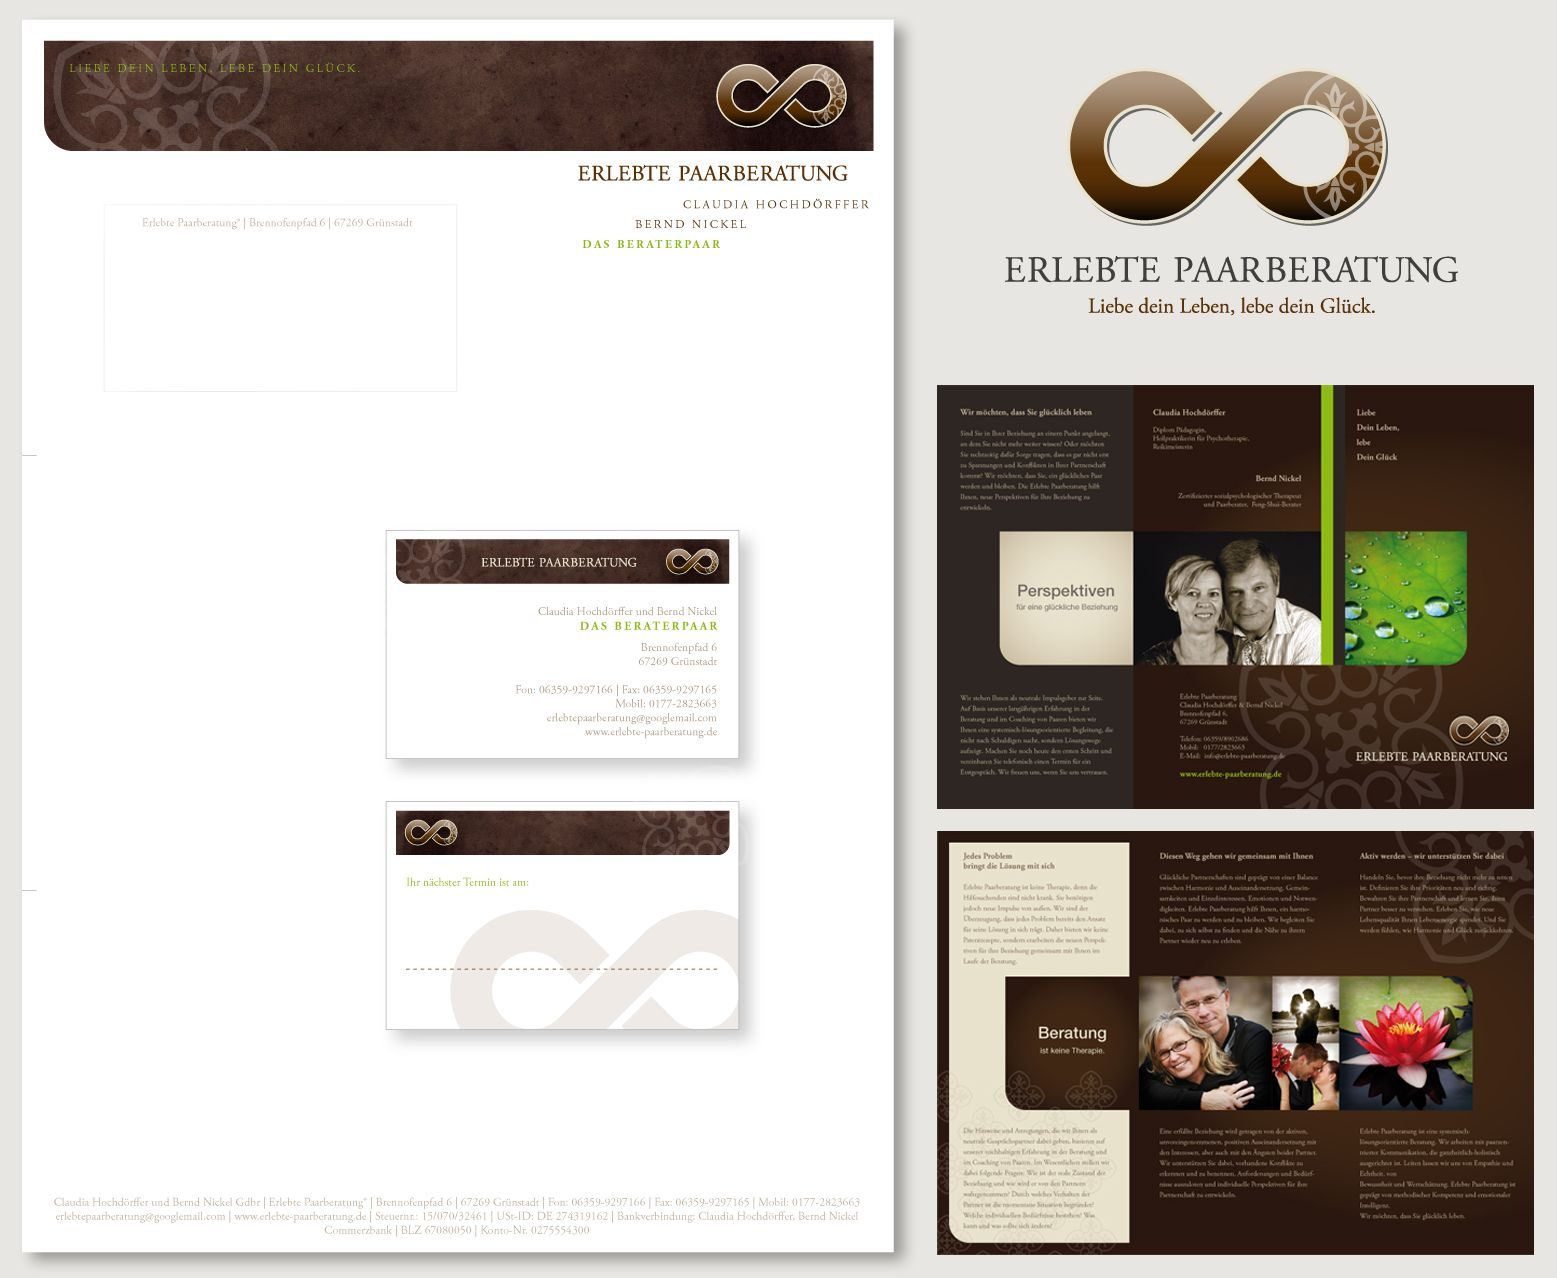 Style Designs The Most Stylish Creative Designs Blog Corporate Design Design Creative Design